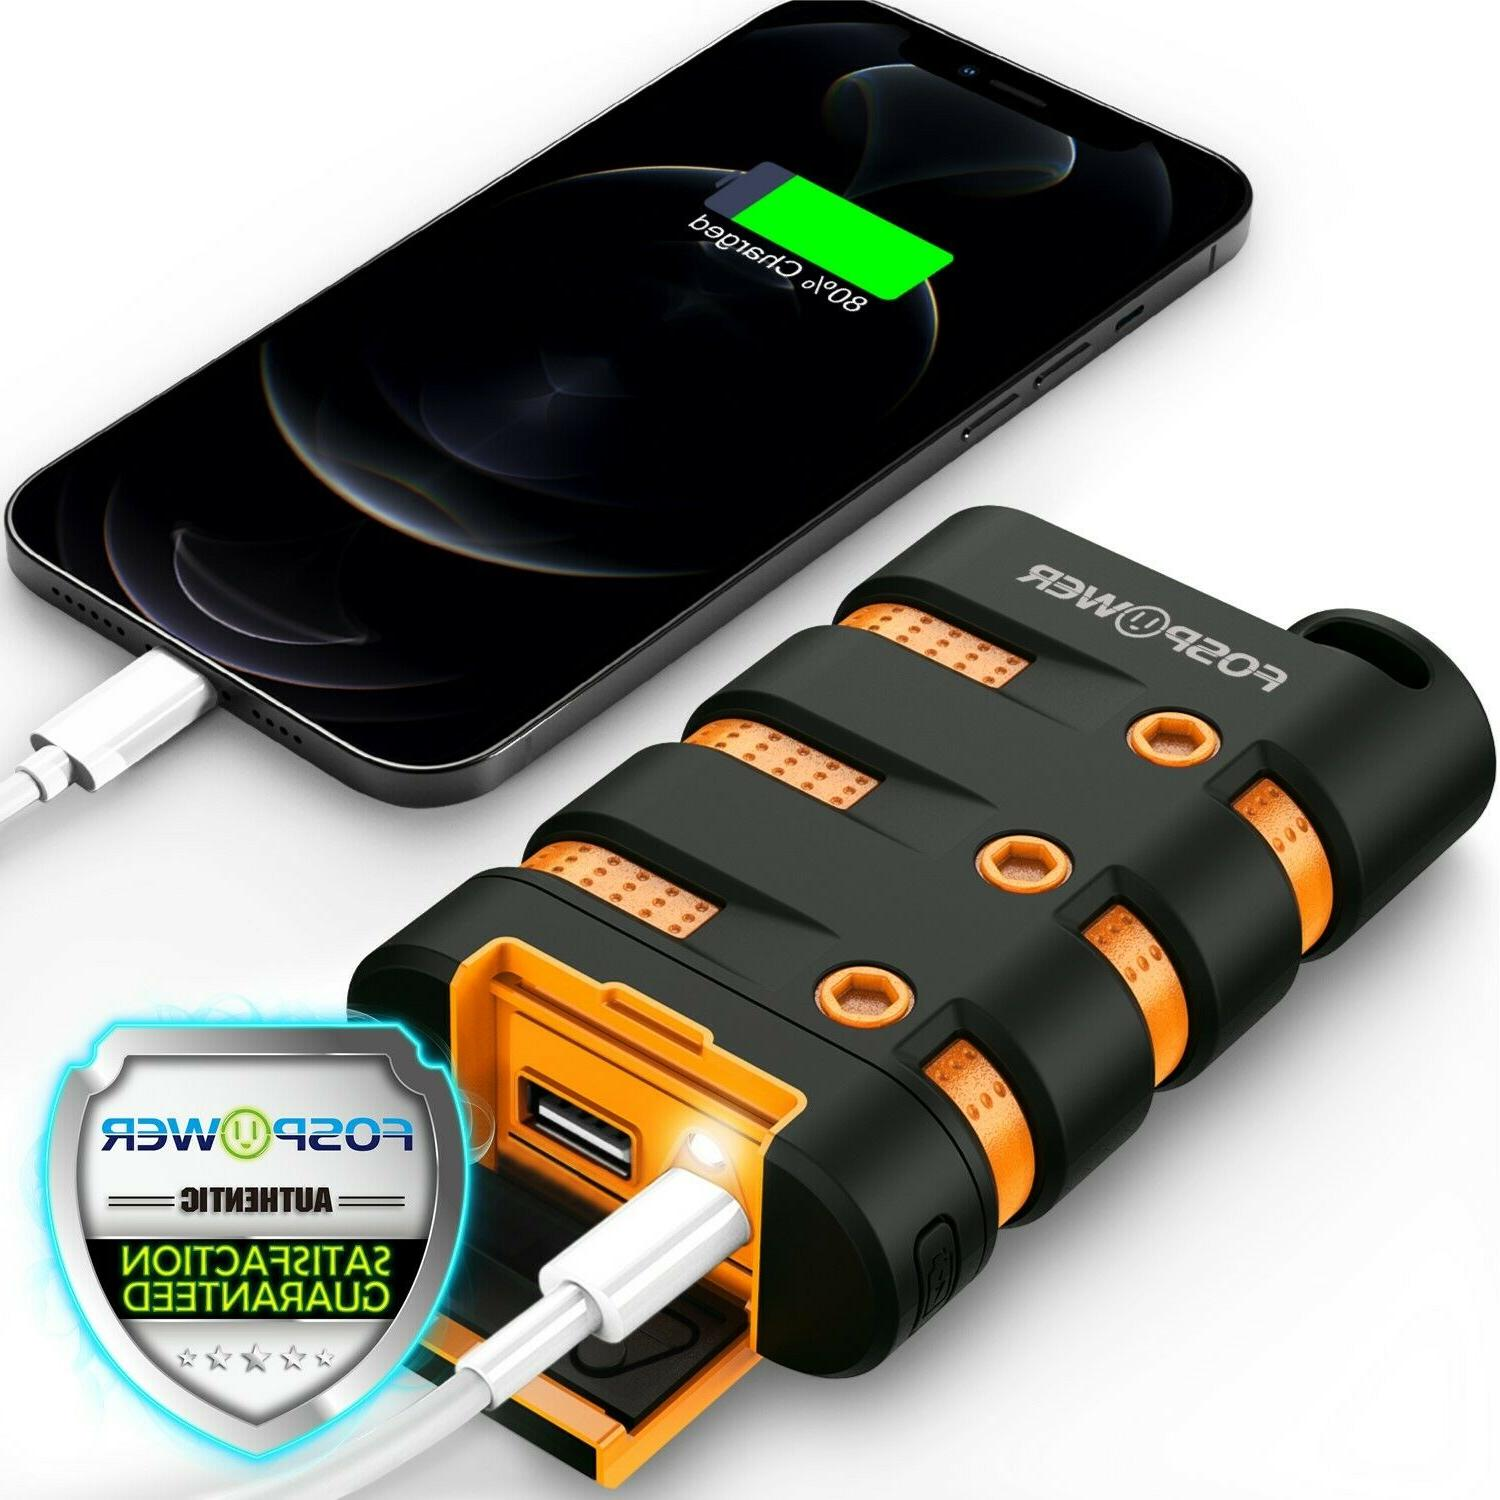 Waterproof Phone Charger Battery Pack Bank